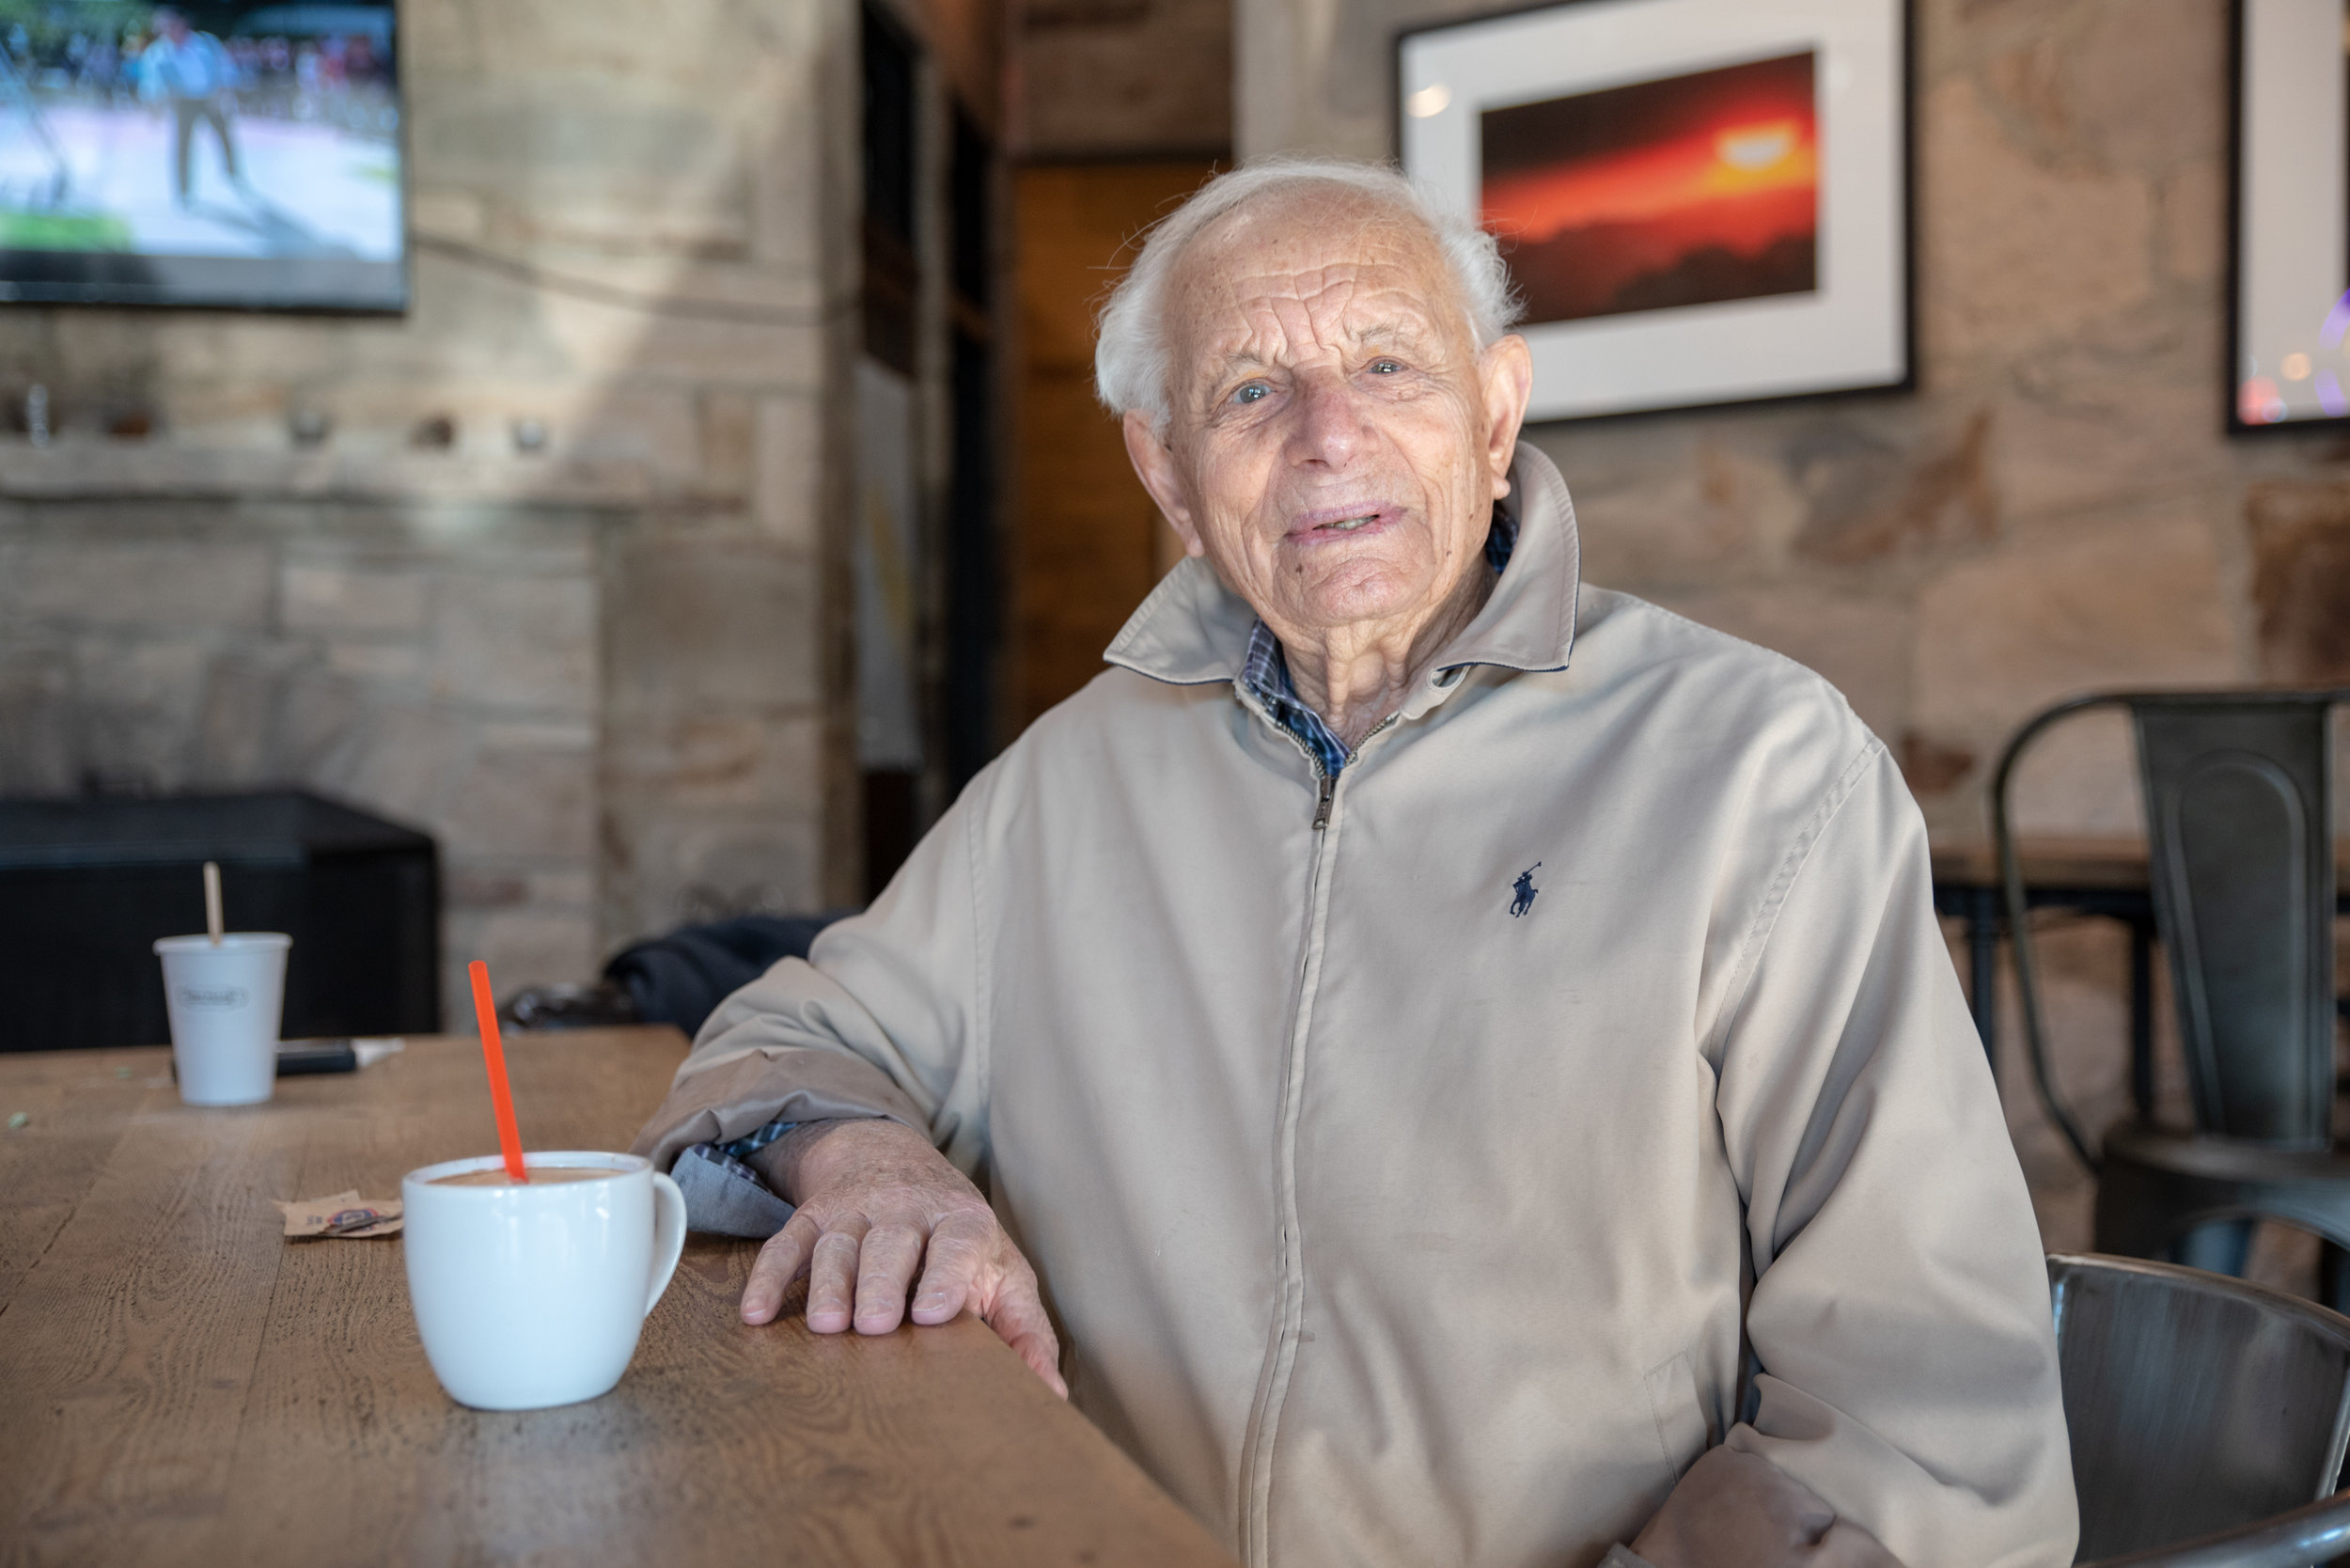 Tom DiMaggio, a 96-year-old retired fisherman who spent 50 seasons in Bristol Bay, spends weekday mornings at the East Village Coffee Lounge, trading stories with members of the local fishing community. He remembers when he started fishing and used to get 25 cents per salmon, which are about 5 pounds each; in about 1955, buyers started paying per pound. (Today, salmon fetches roughly $1.25/pound.)